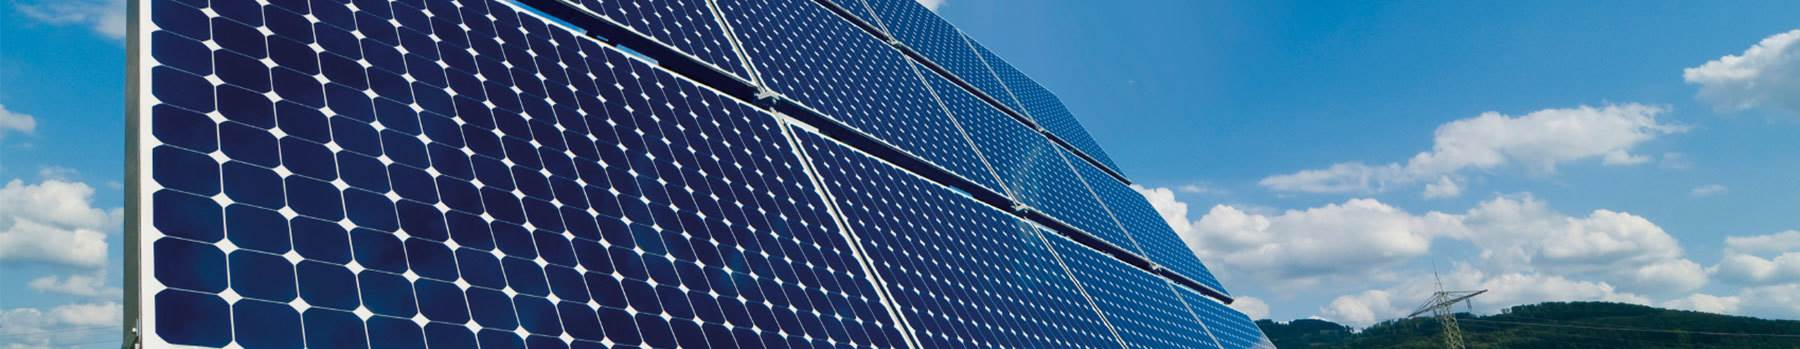 Renewables Energy Facilities Software Solutions